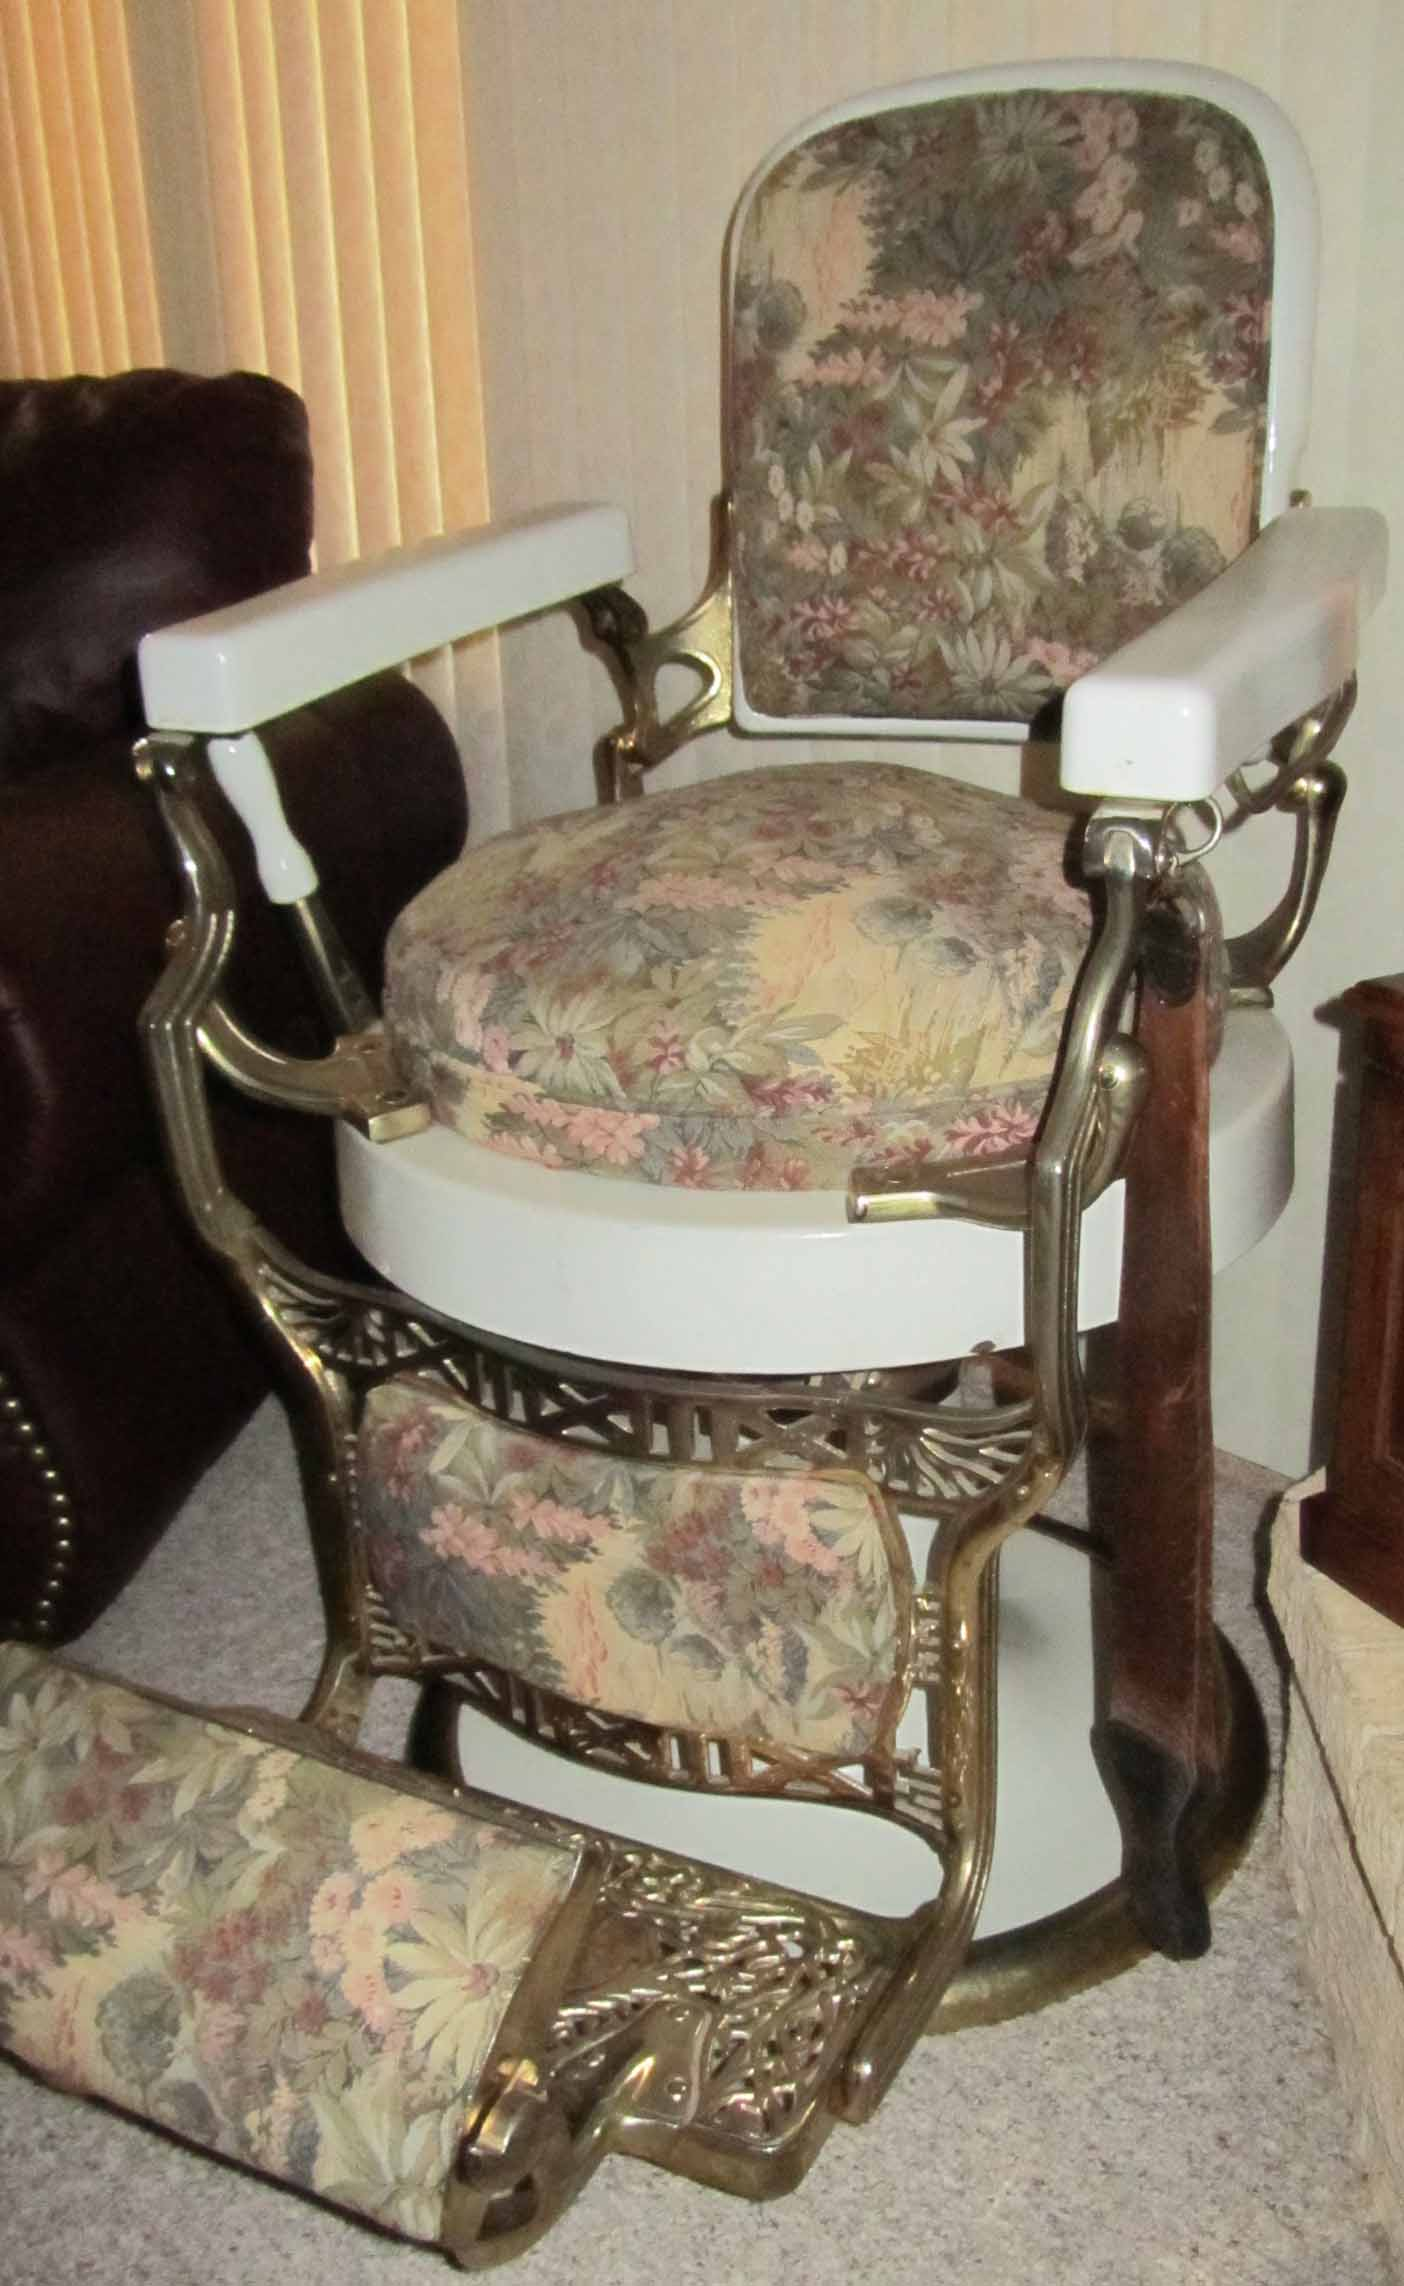 Old School Barber Chair Antique Barber Chairs Marketplace Buy And Sell Antique